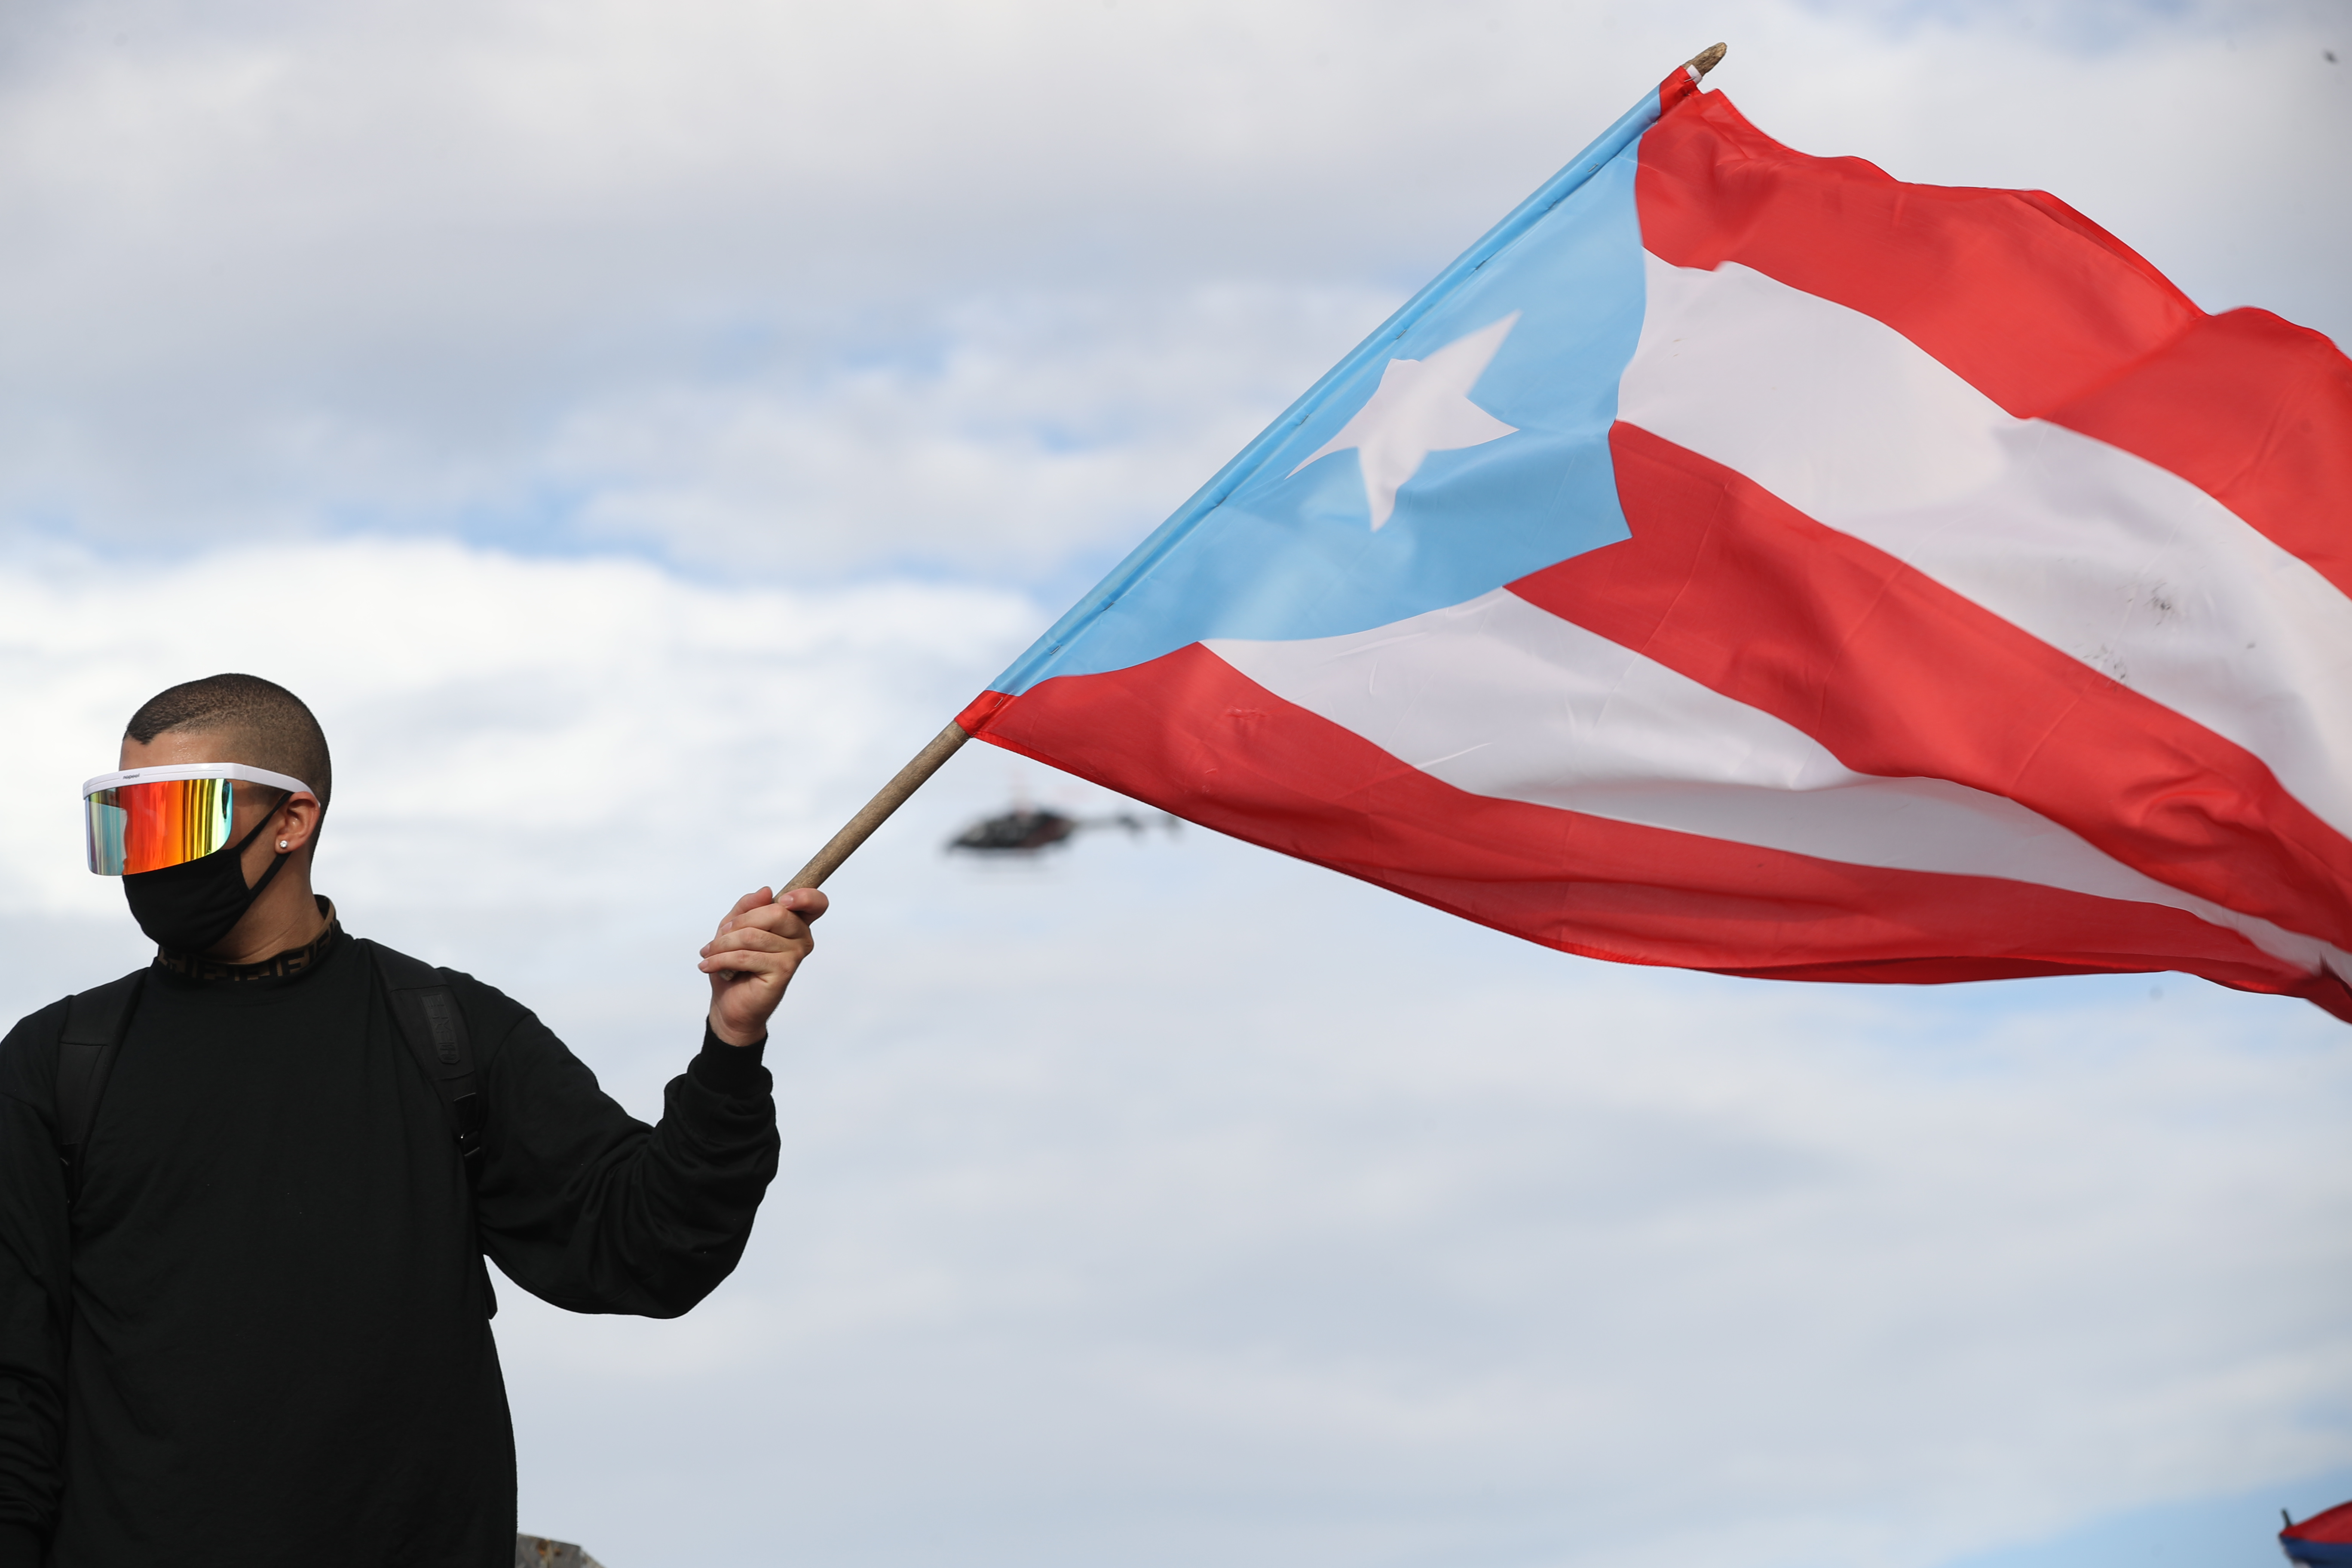 Embattled Puerto Rico Governor Ricardo Rossello Faces Growing Calls For Resignation